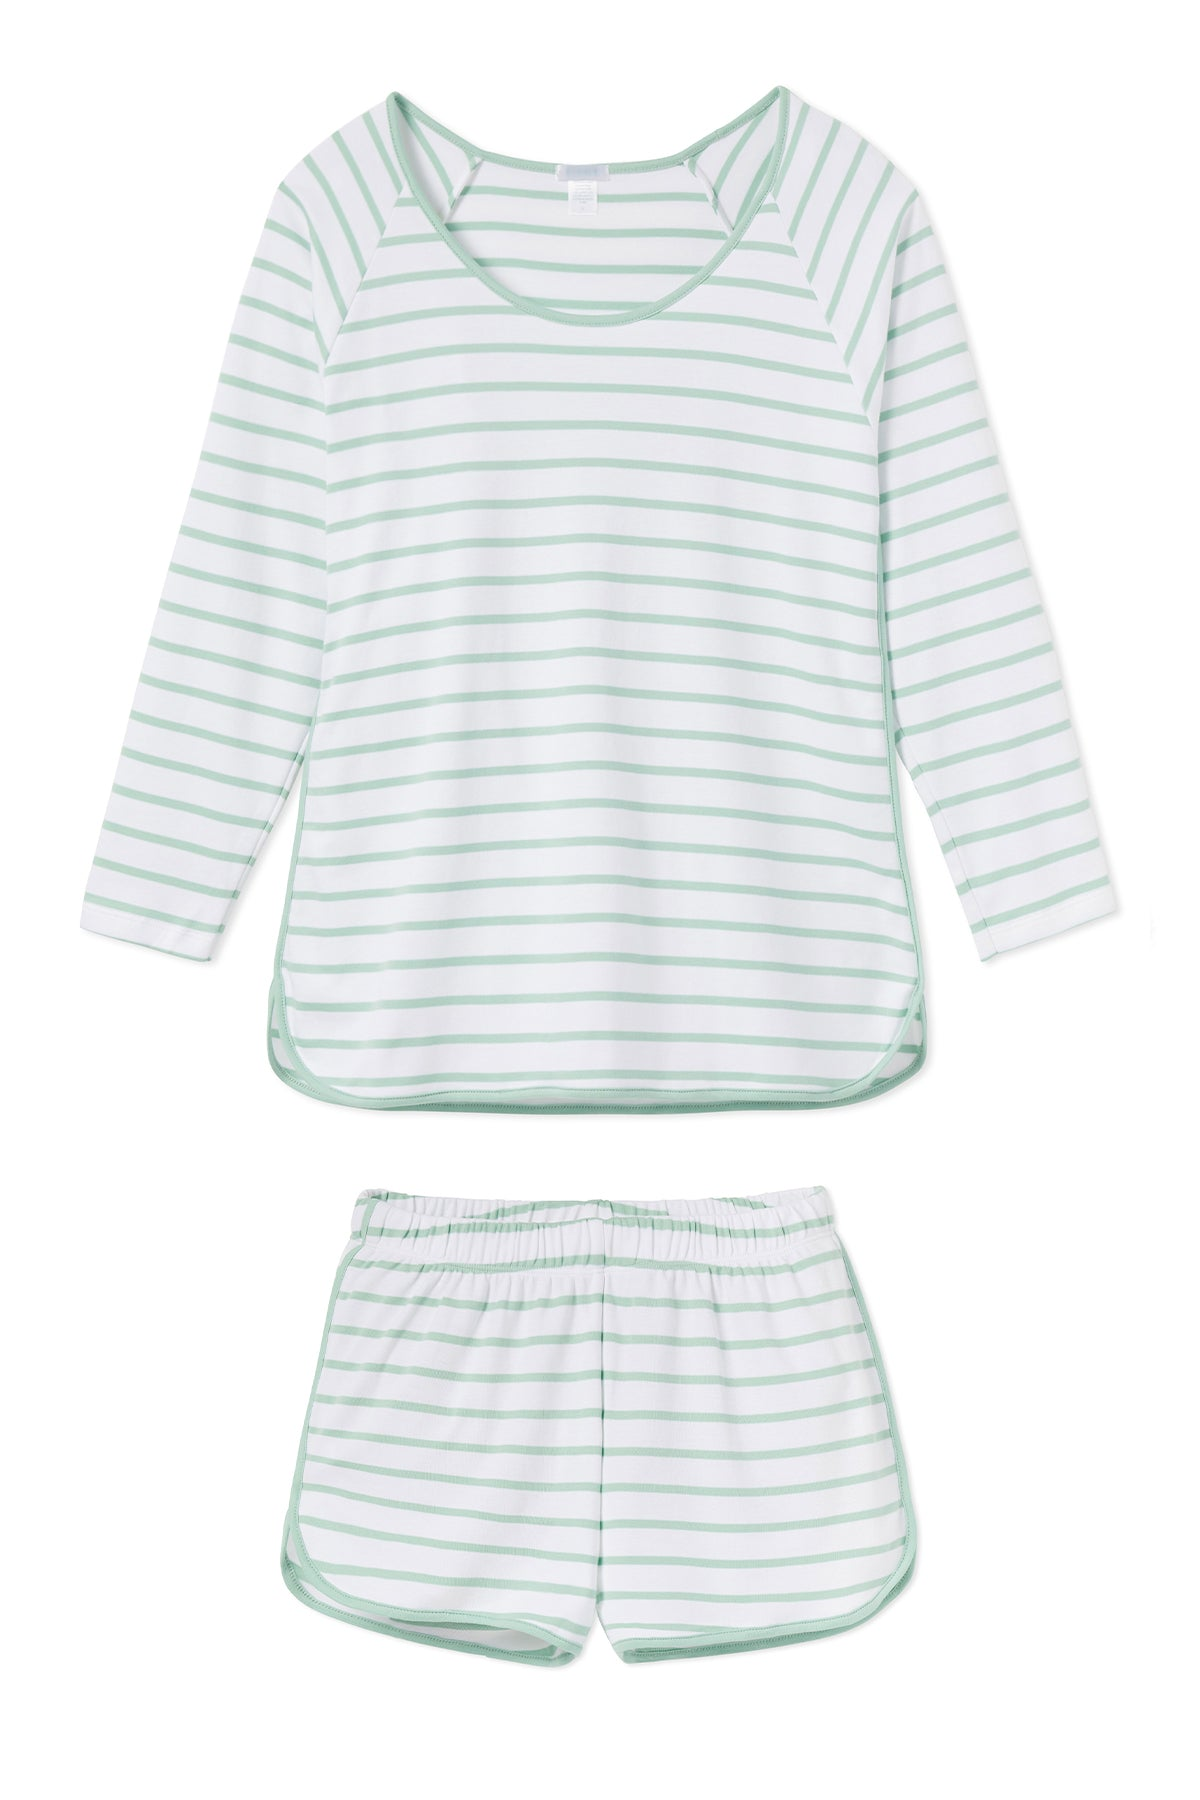 Pima Long-Short Set in Spring Green